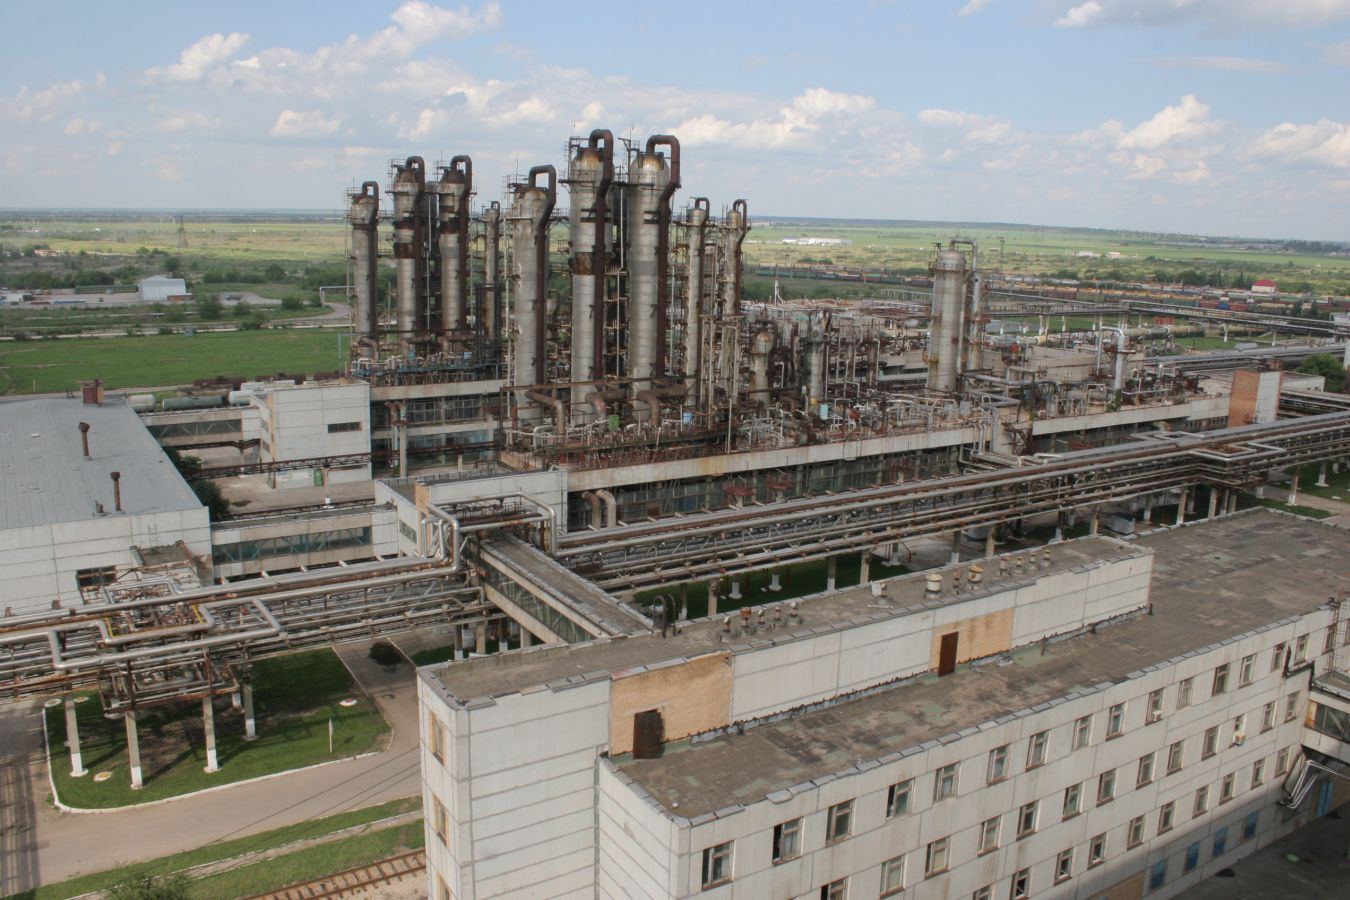 Decommissioning of the strong nitric acid production and the first and second ammonia lines due to their obsolescence.